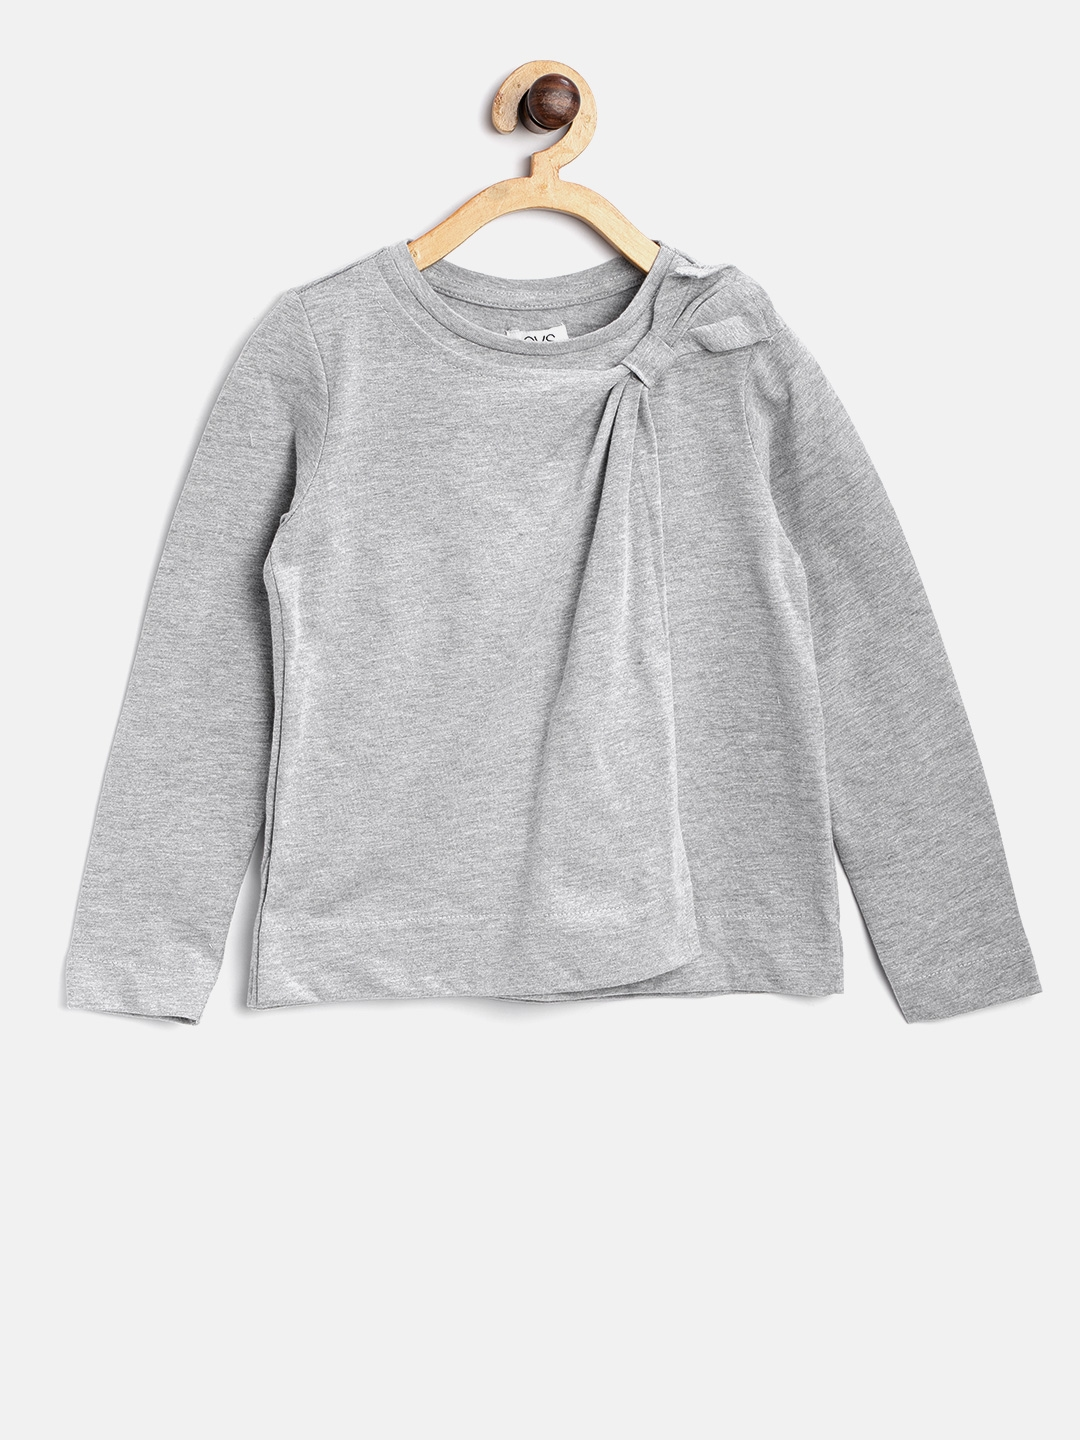 f93600c412e Buy OVS Girls Grey Melange Layered Top With Bow Detail - Tops for ...